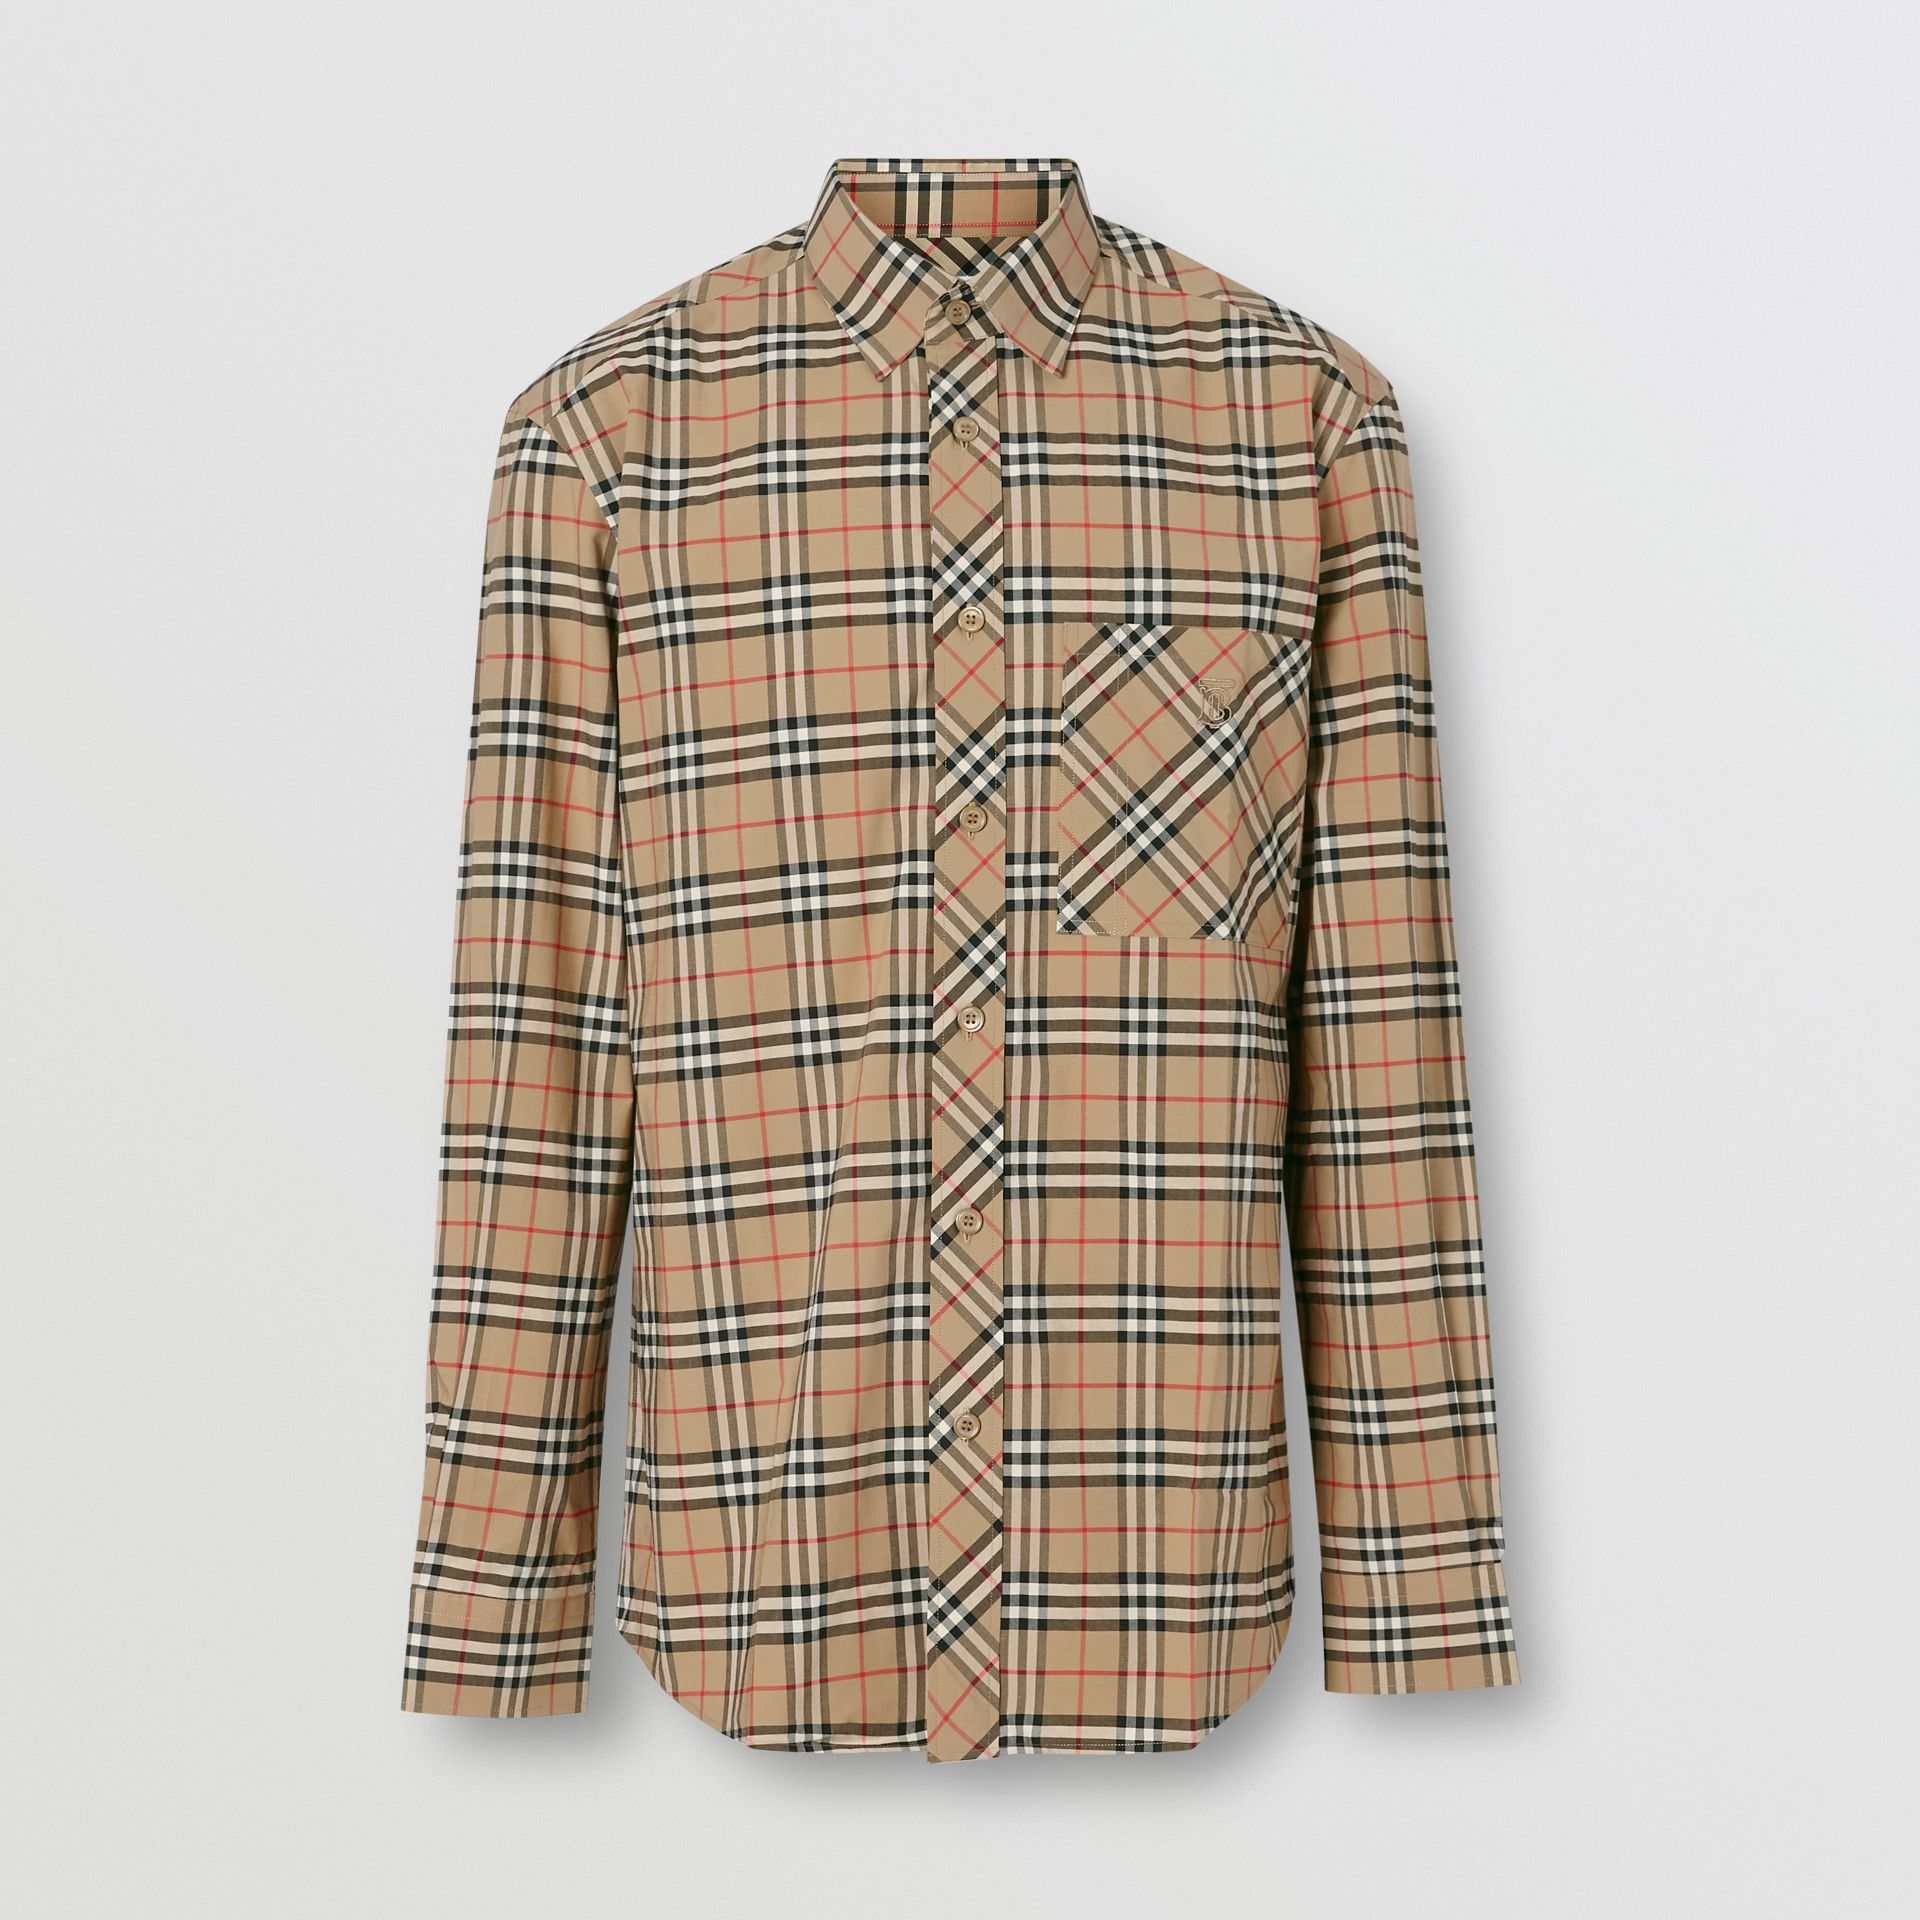 Chemise en coton stretch micro-check (Beige D'archive) - Homme | Burberry - photo de la galerie 3